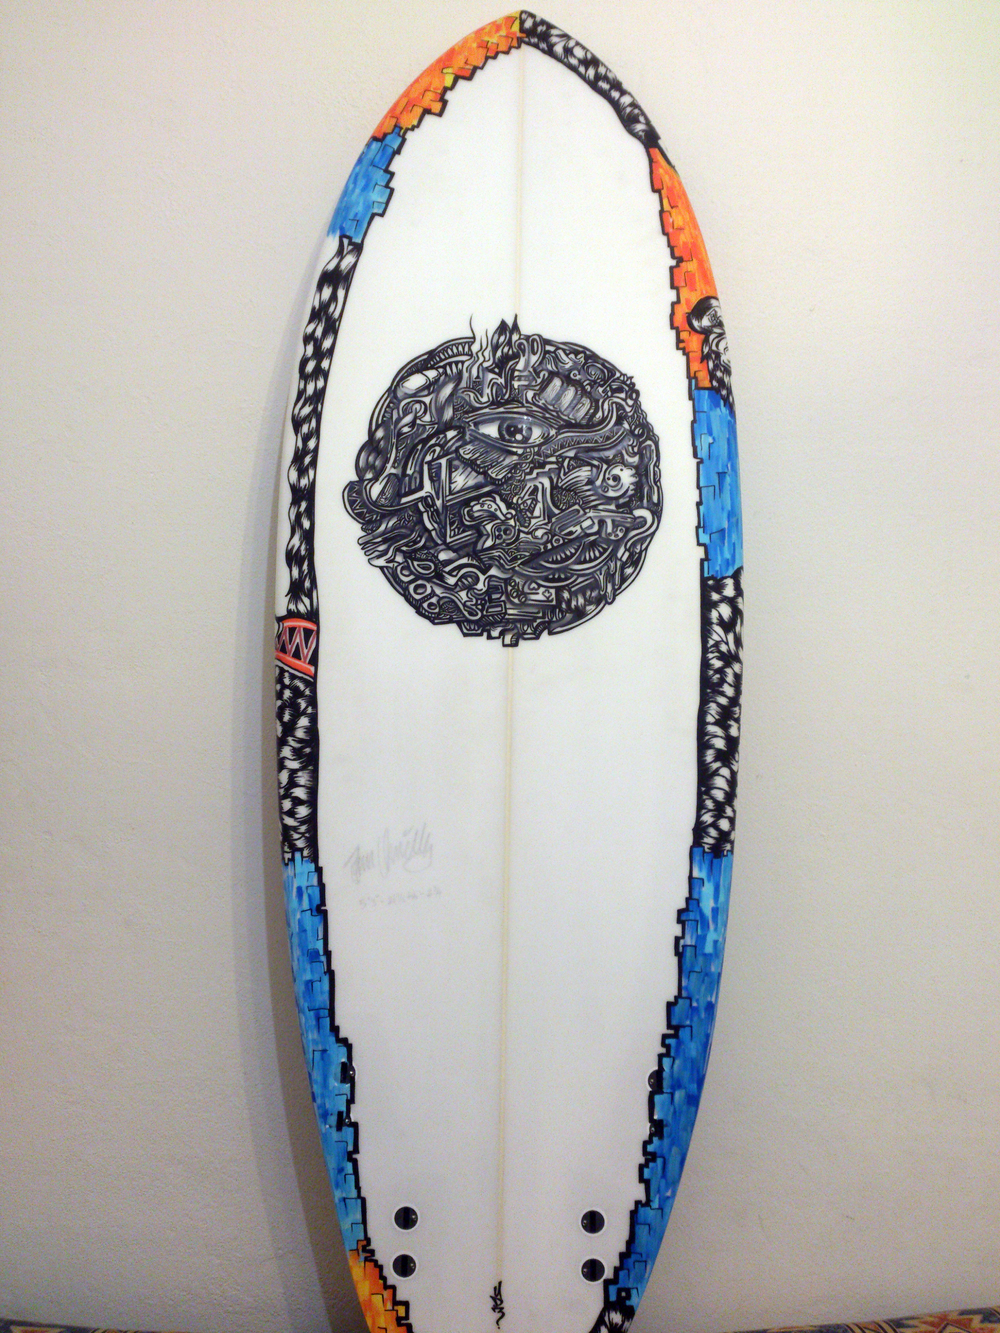 custom-sufboard-art-sam-shennan-ud3-street-surf-skate-artist-handmade-handpainted-surf-illustrator-customart-design.jpg